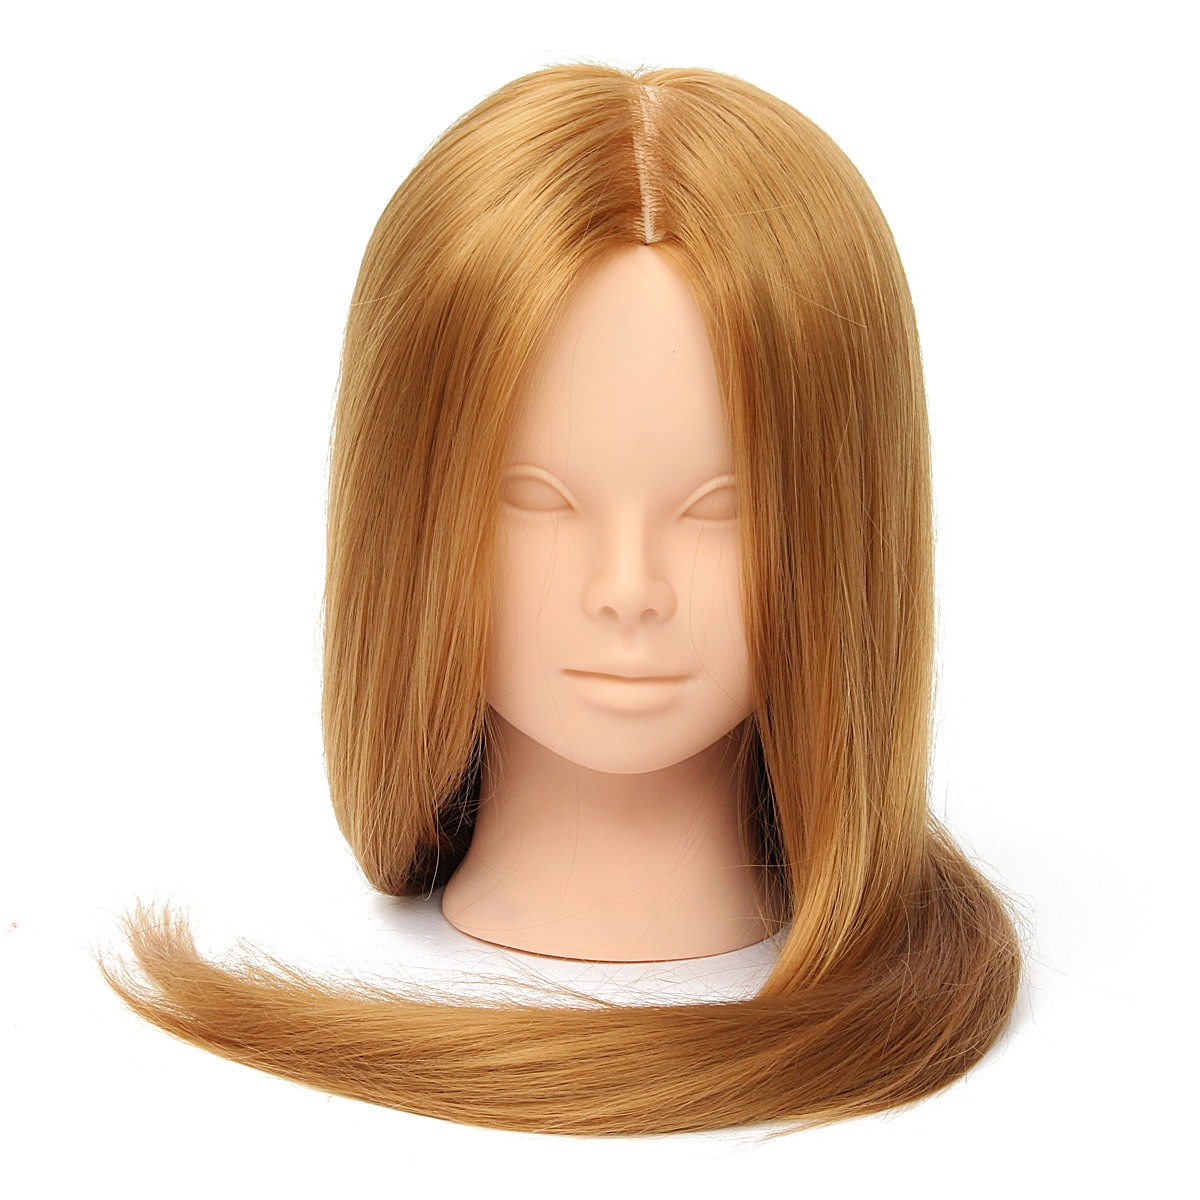 26 Long Hair Training Mannequin Head Model Hairdressing Makeup Practice with Clamp Holder